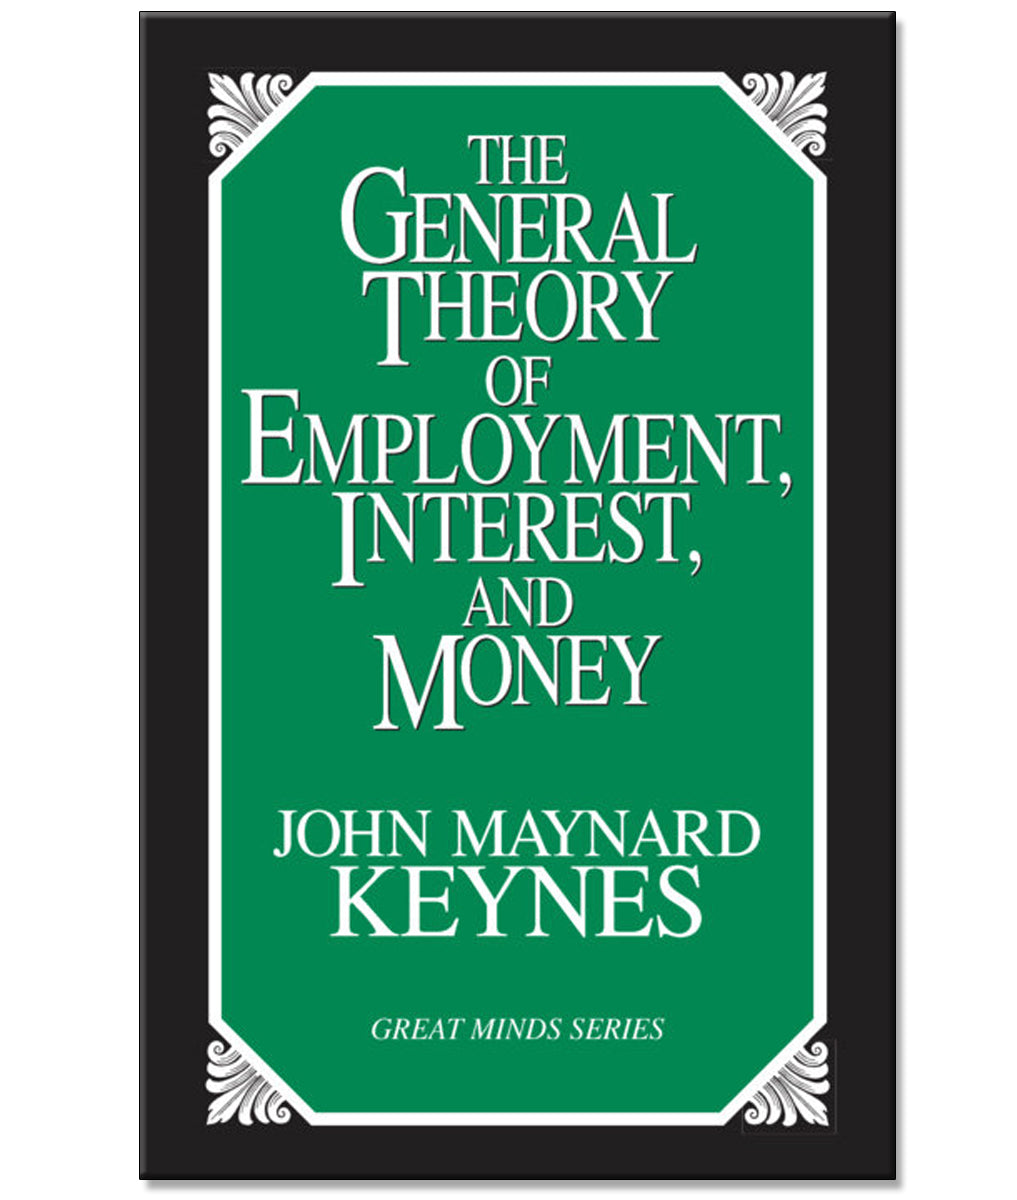 The General Theory of Money Book by John Maynard Keynes